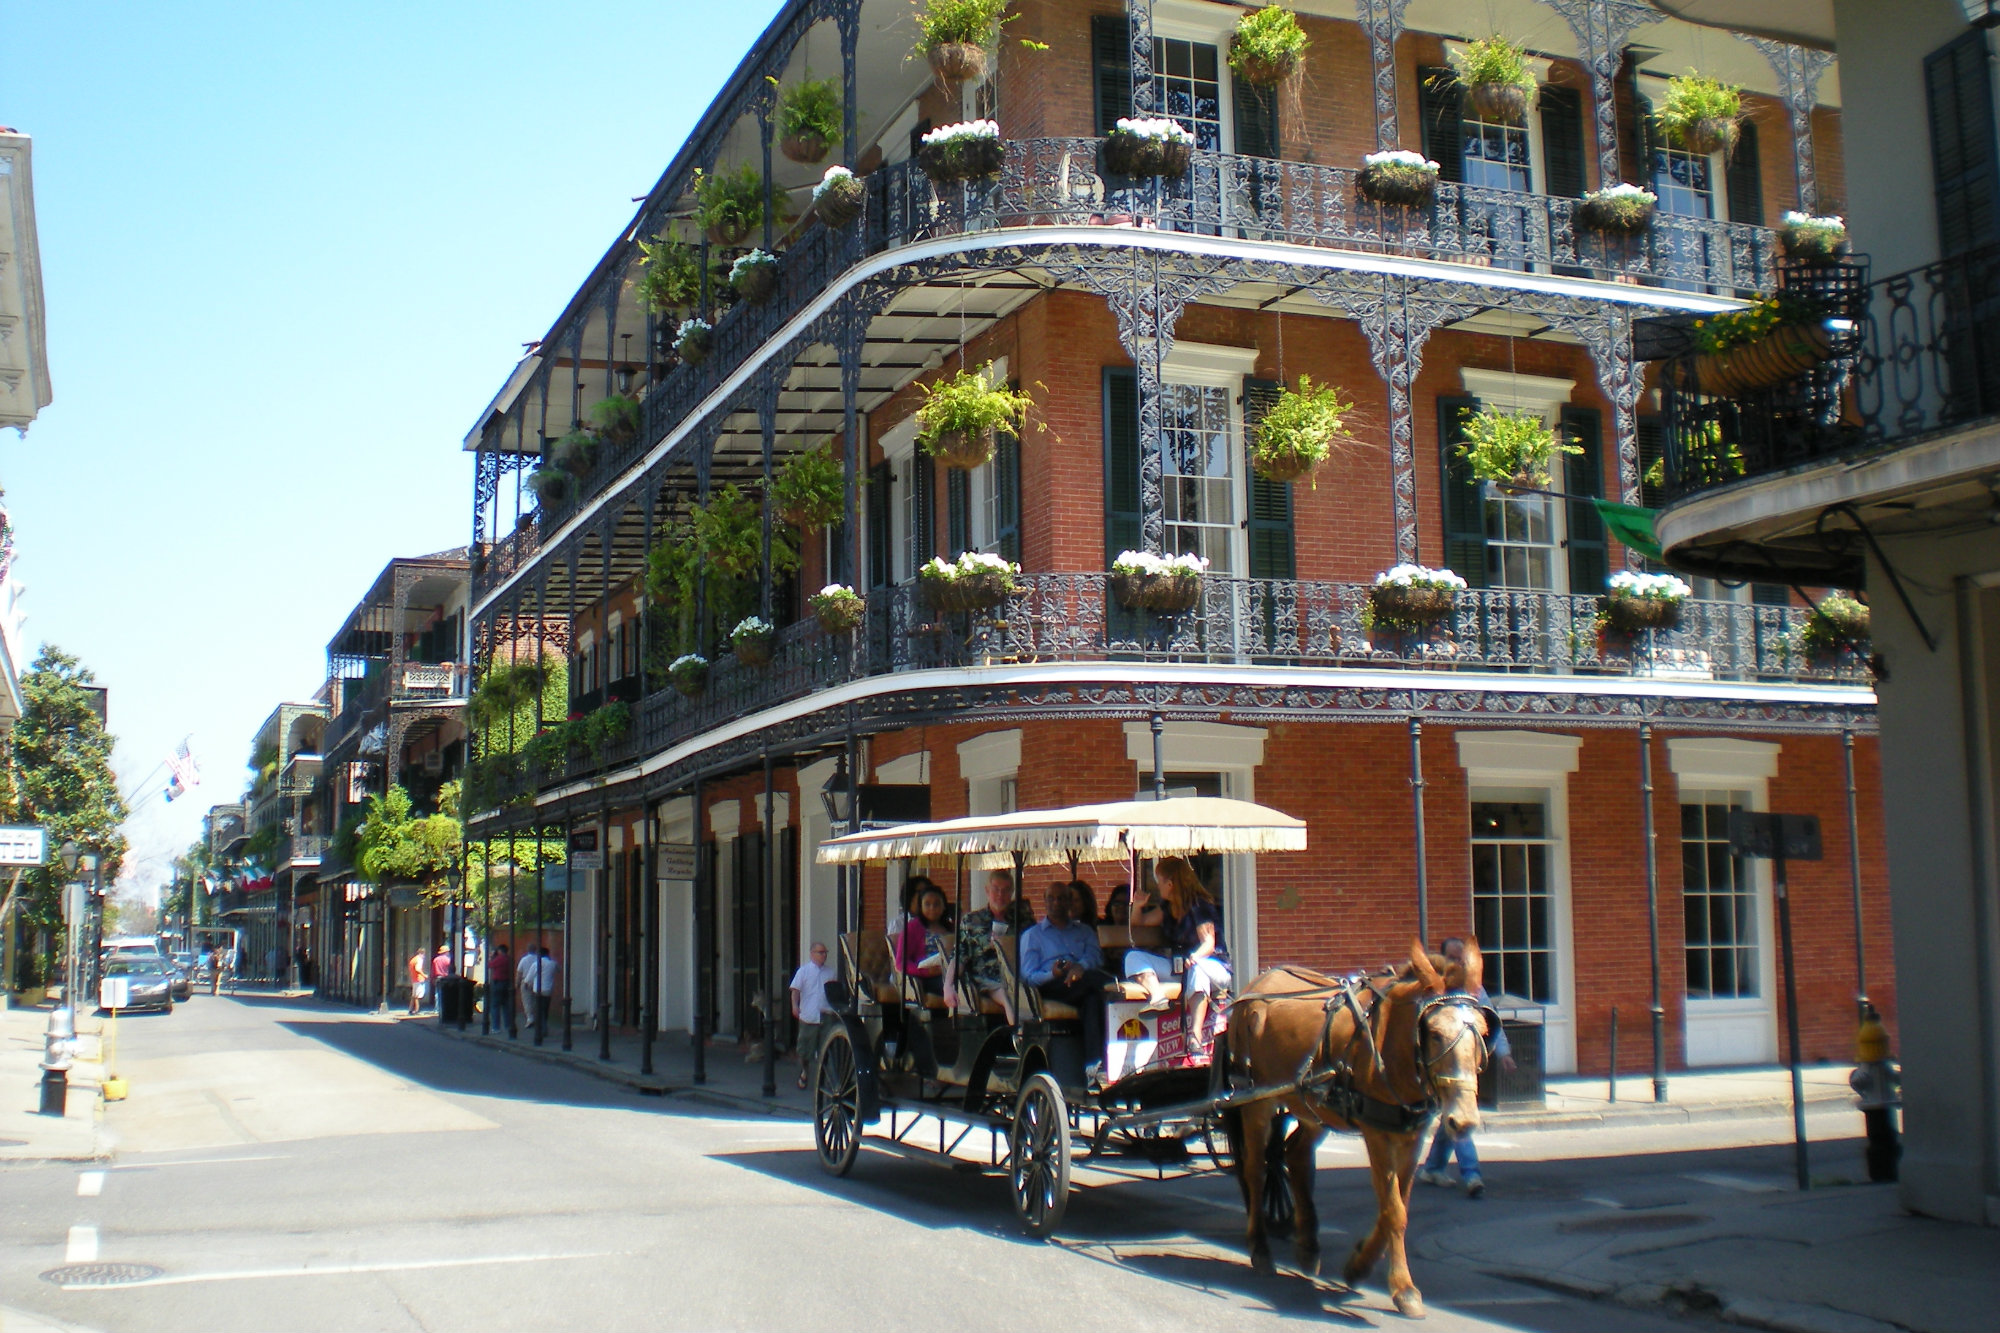 Exploring New Orleans During The Pool Spa Patio Expo| Pool U0026 Spa News |  Conferences, Events, Education, New Orleans Expo 2016